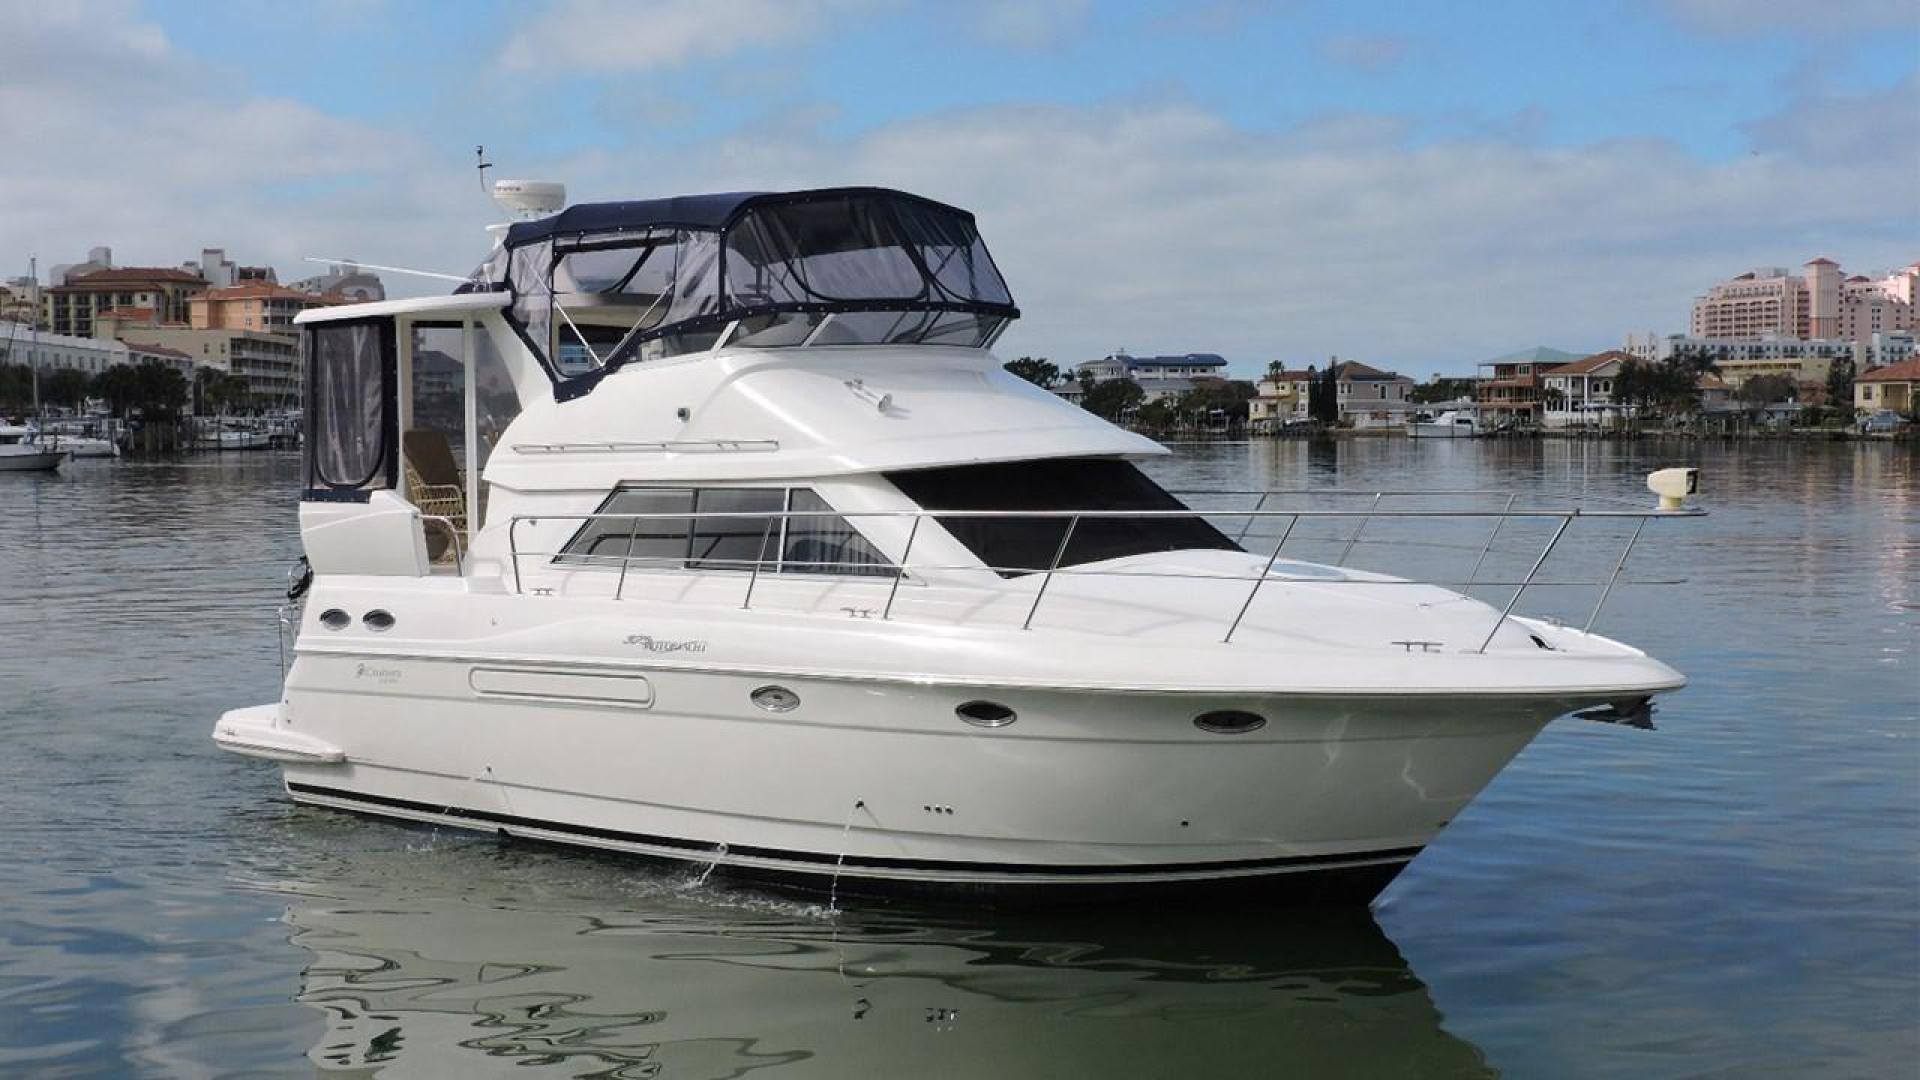 cruisers x motor outboard twin ob hard with top cabin scollins xo cabins rs cruiser us engine